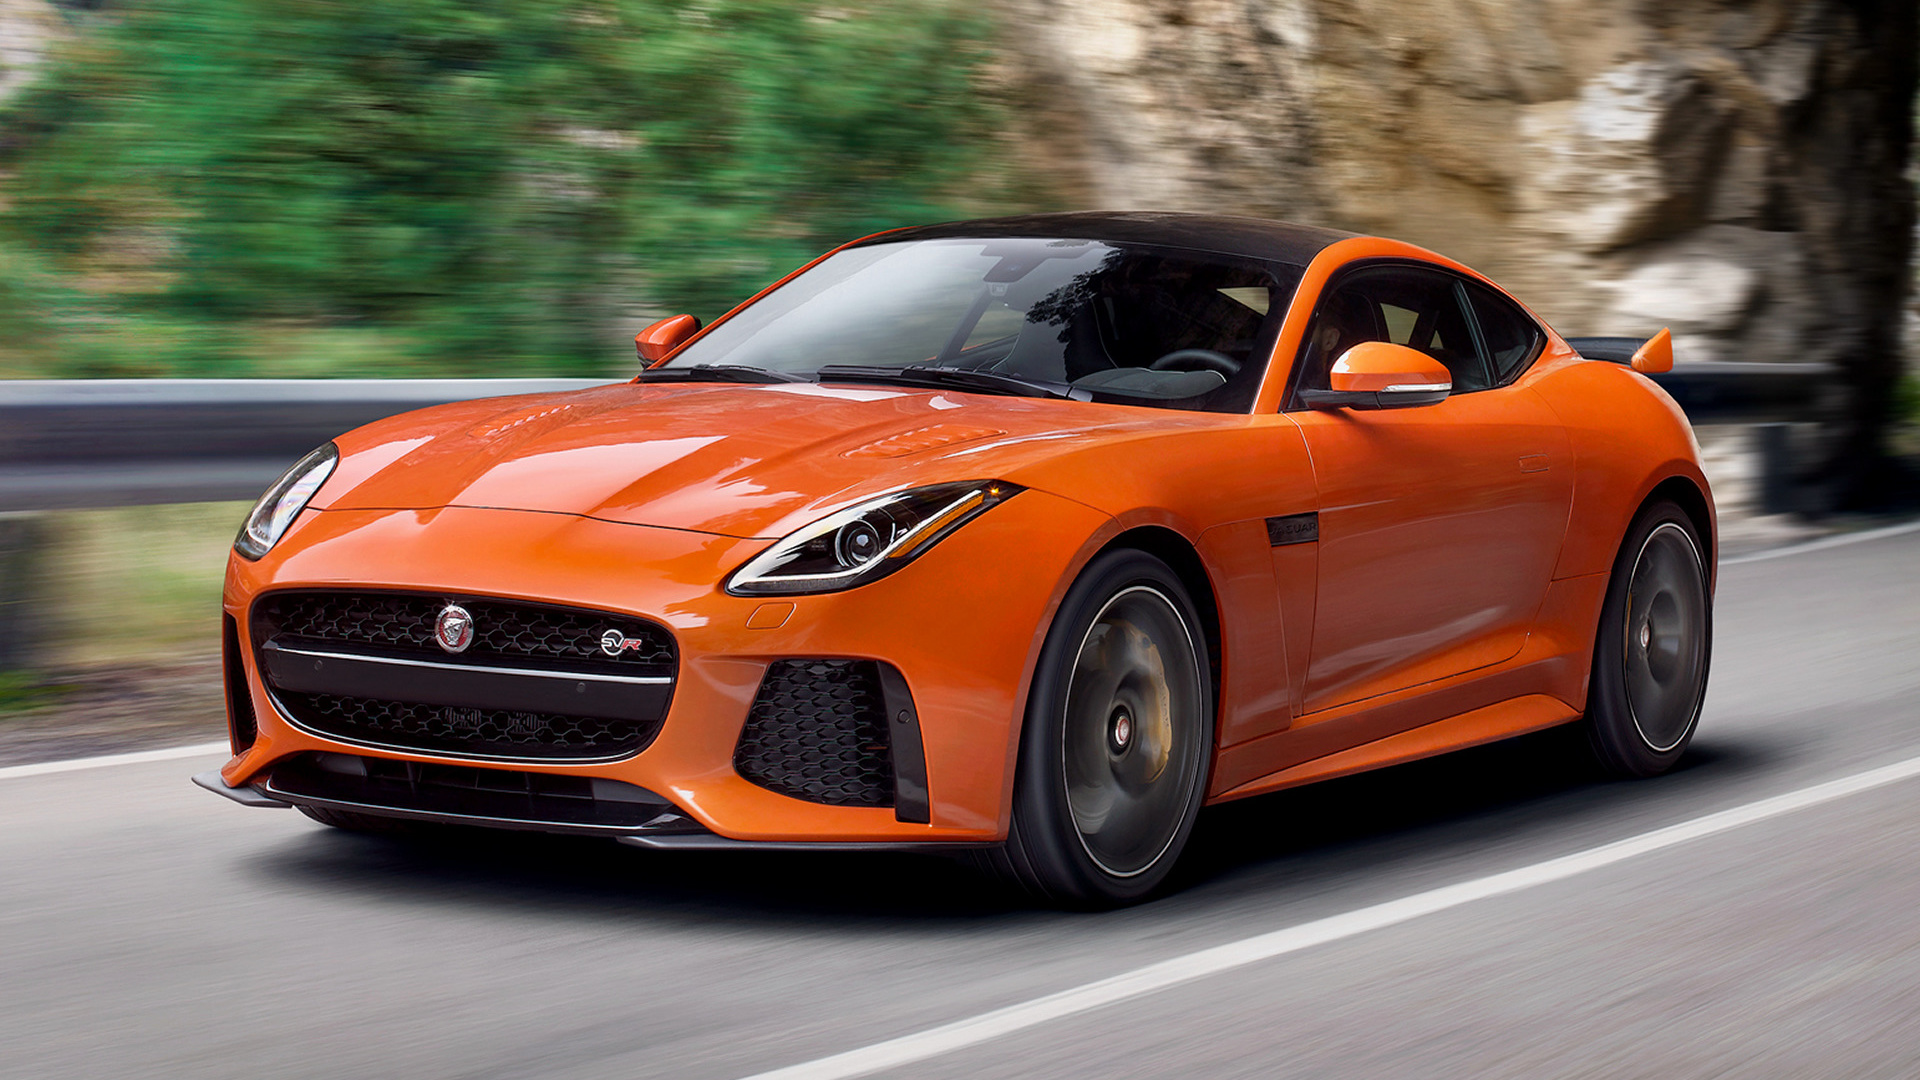 2016 Jaguar F-Type SVR Coupe (US) - Wallpapers and HD ...